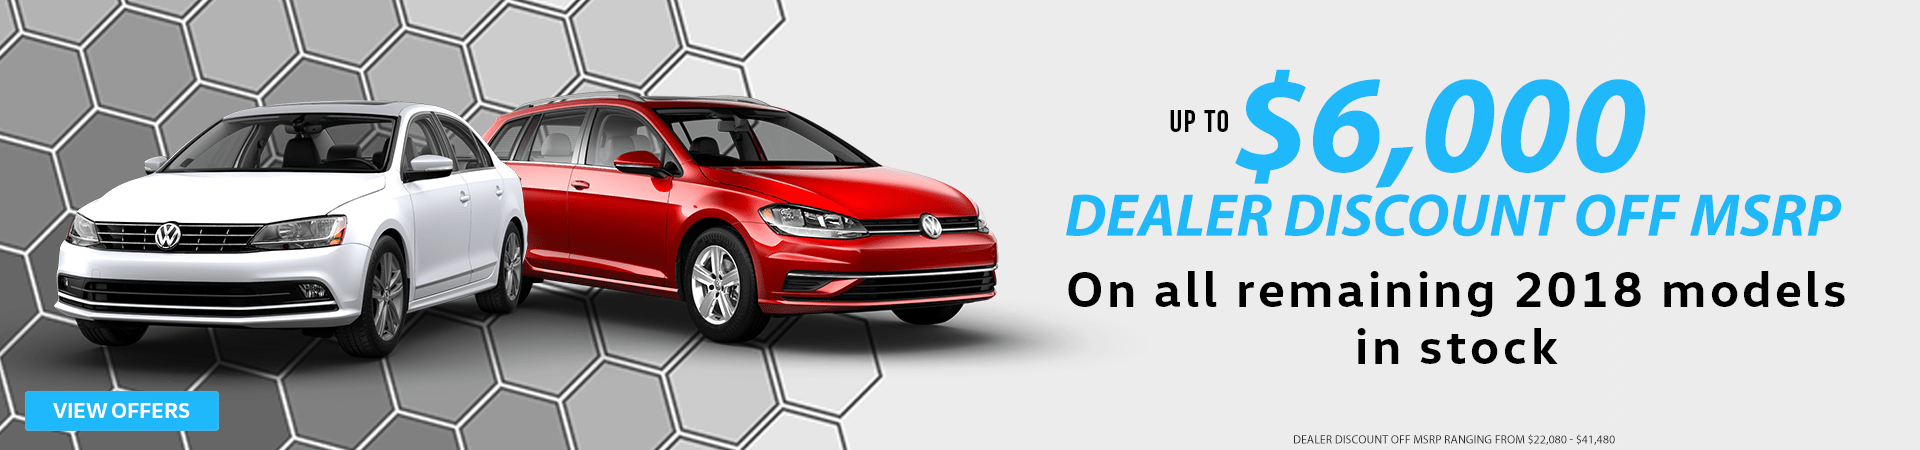 Golf Sportwagen & Jetta Dealer Discount